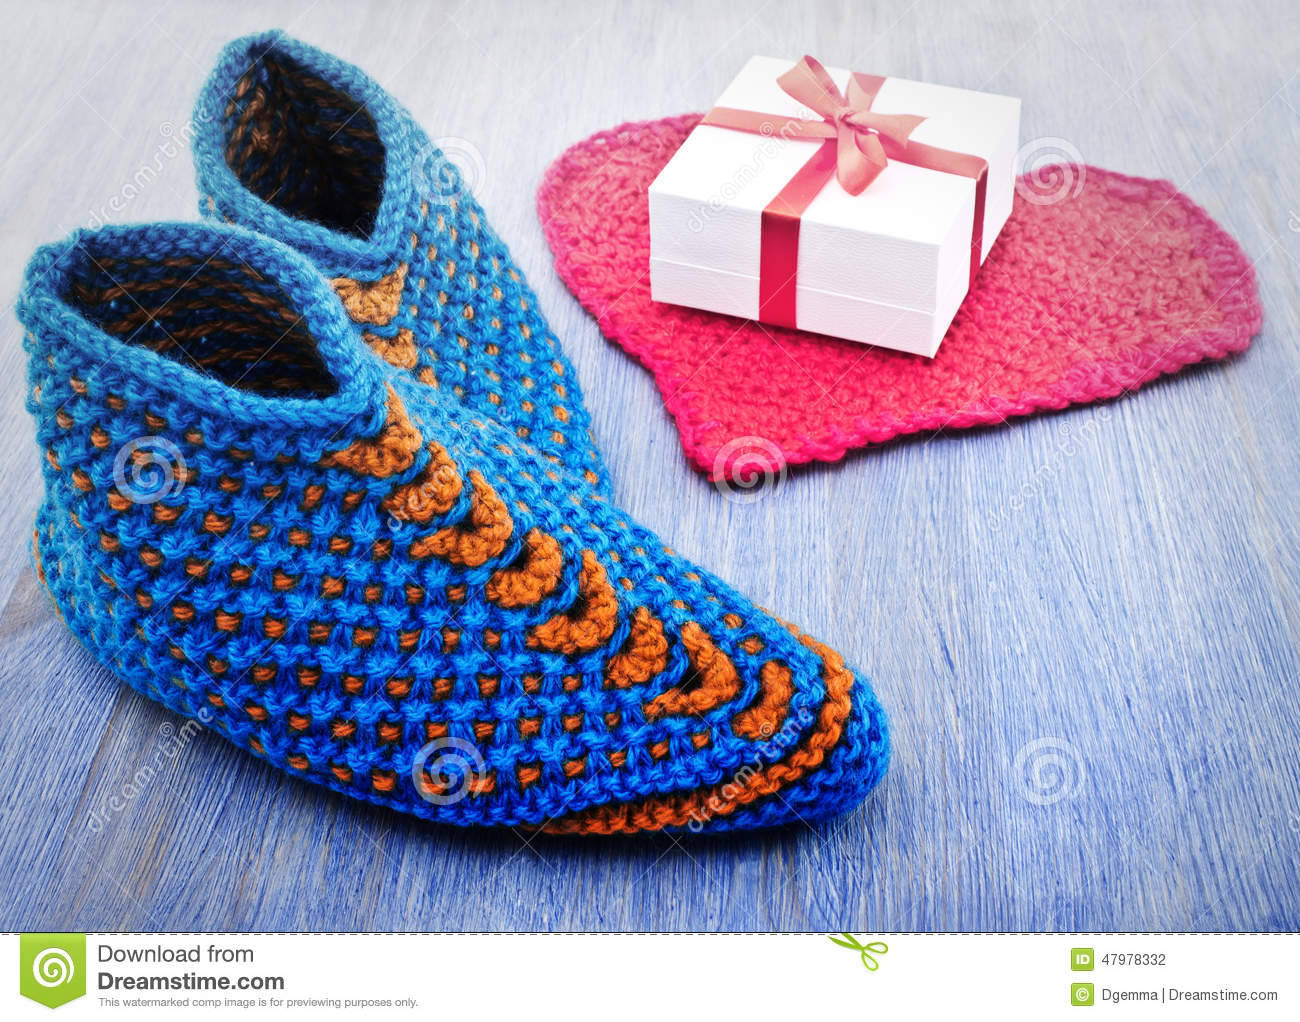 Knitting Patterns For Old Fashioned Slippers : Old Fashioned Knitted Slippers Stock Photo - Image: 47978332